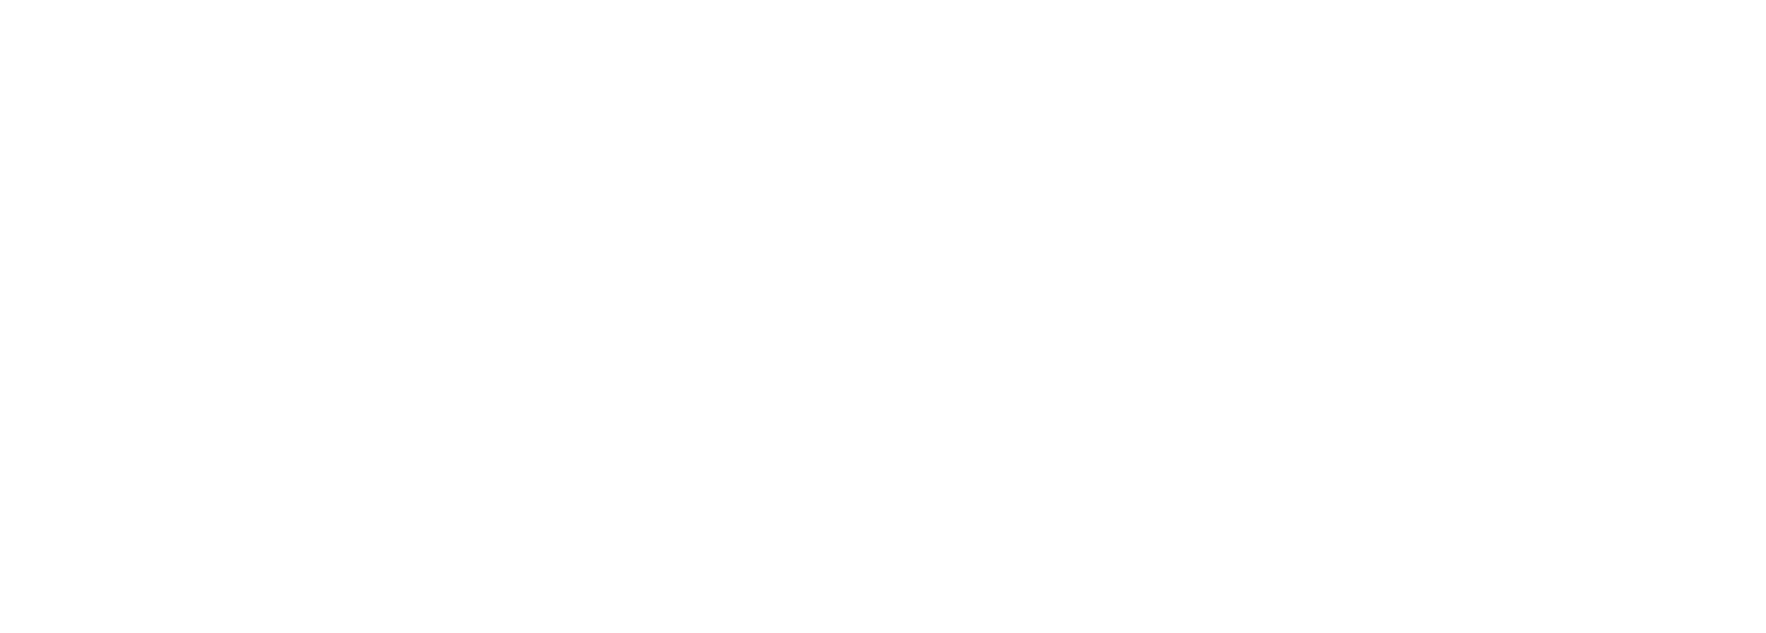 An illustration of two people walking, one holding a flag.